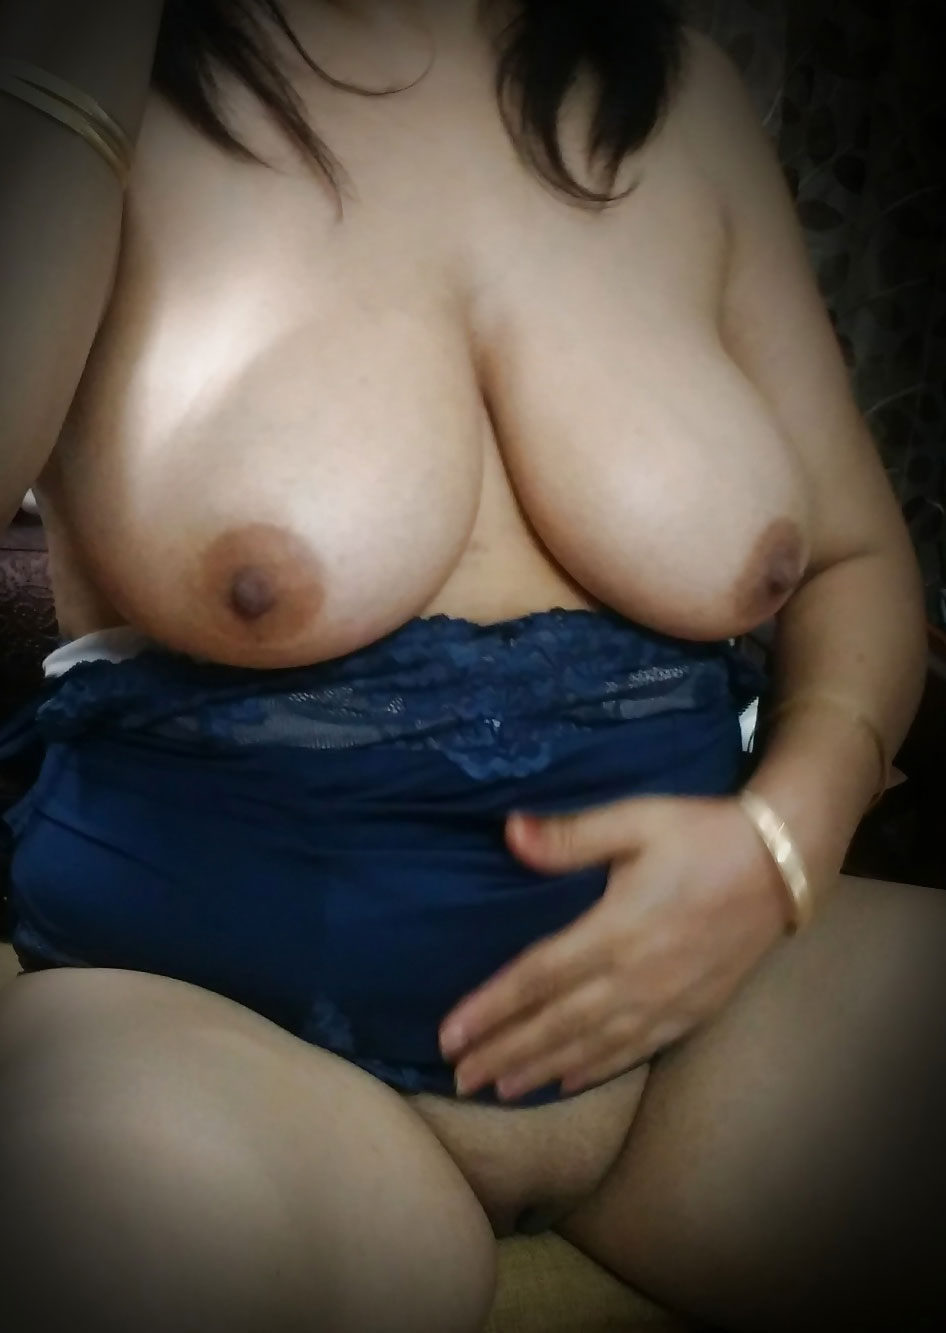 Nude indian big boobs pic